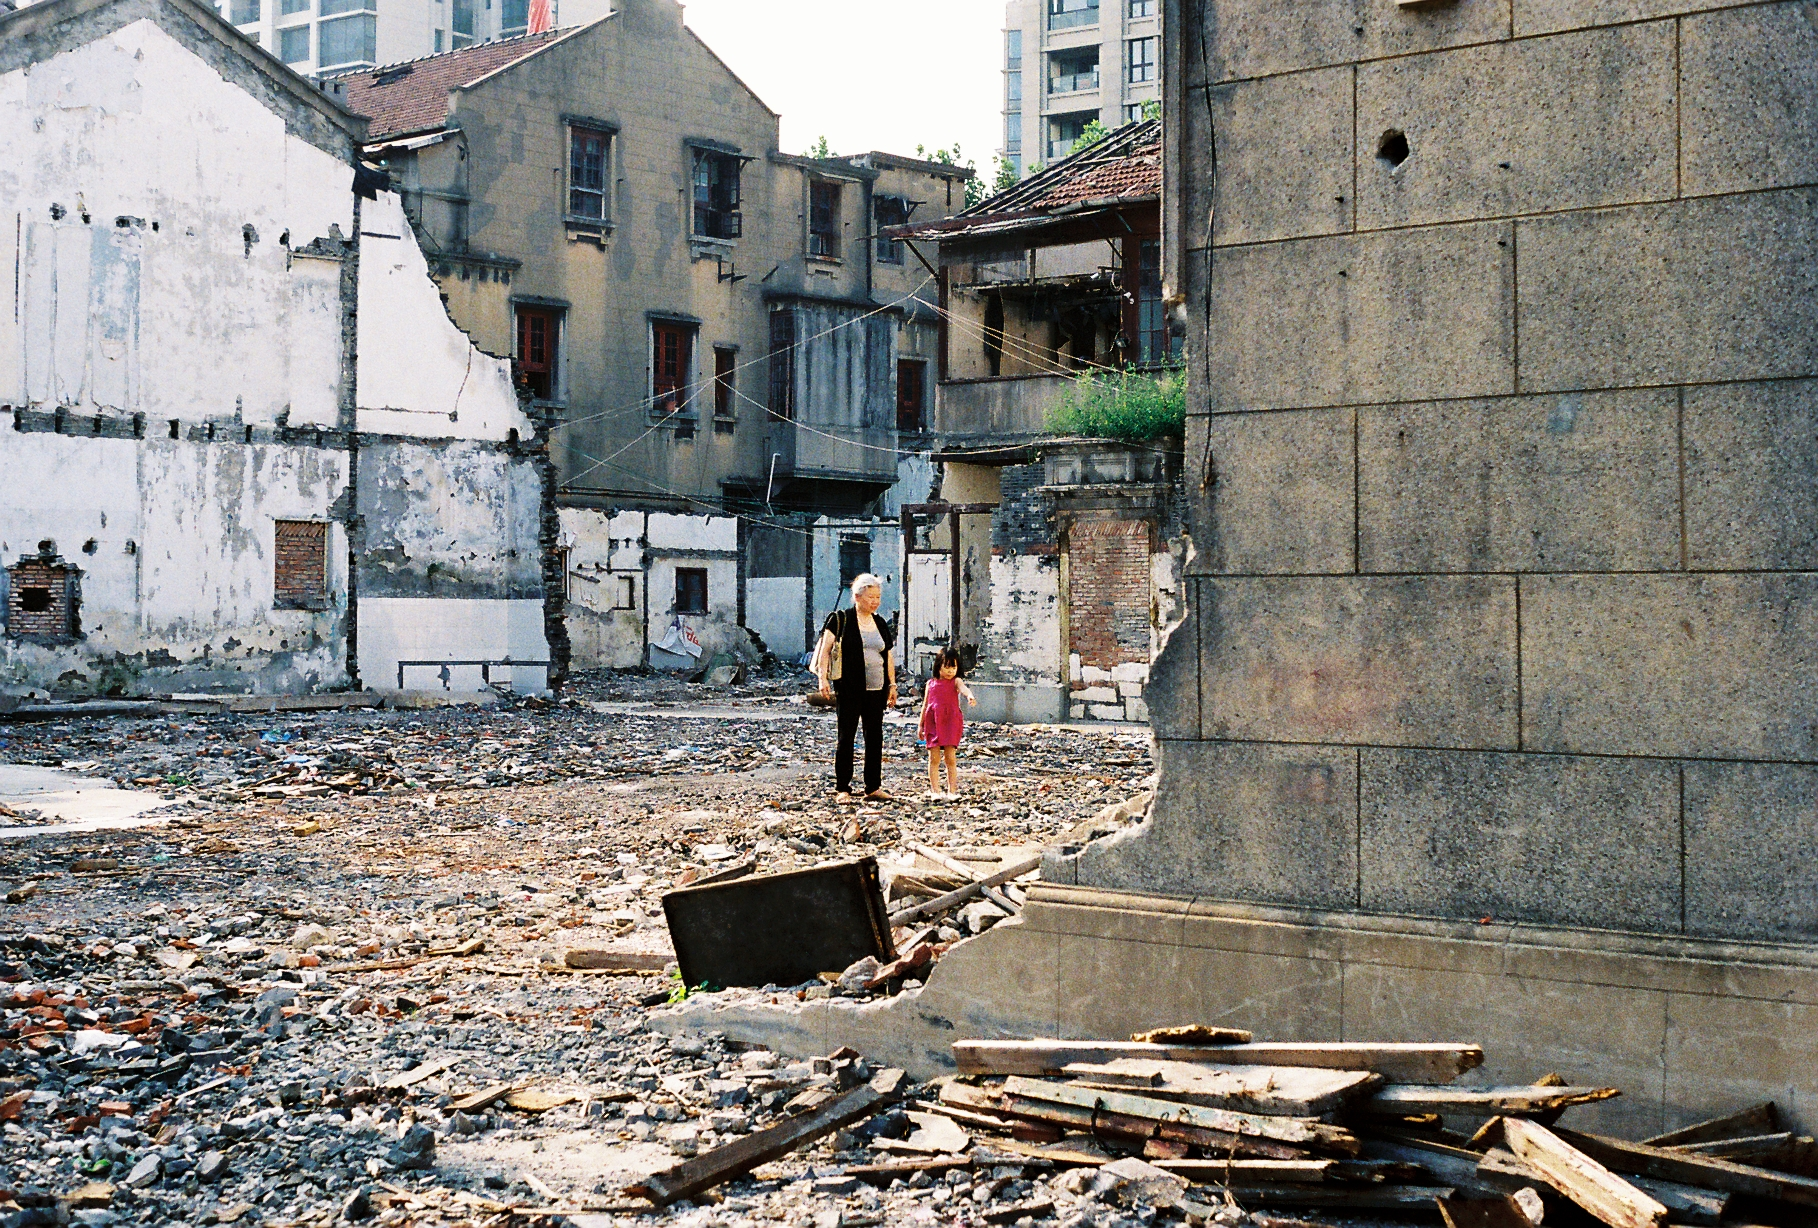 Torn down housing Shanghai